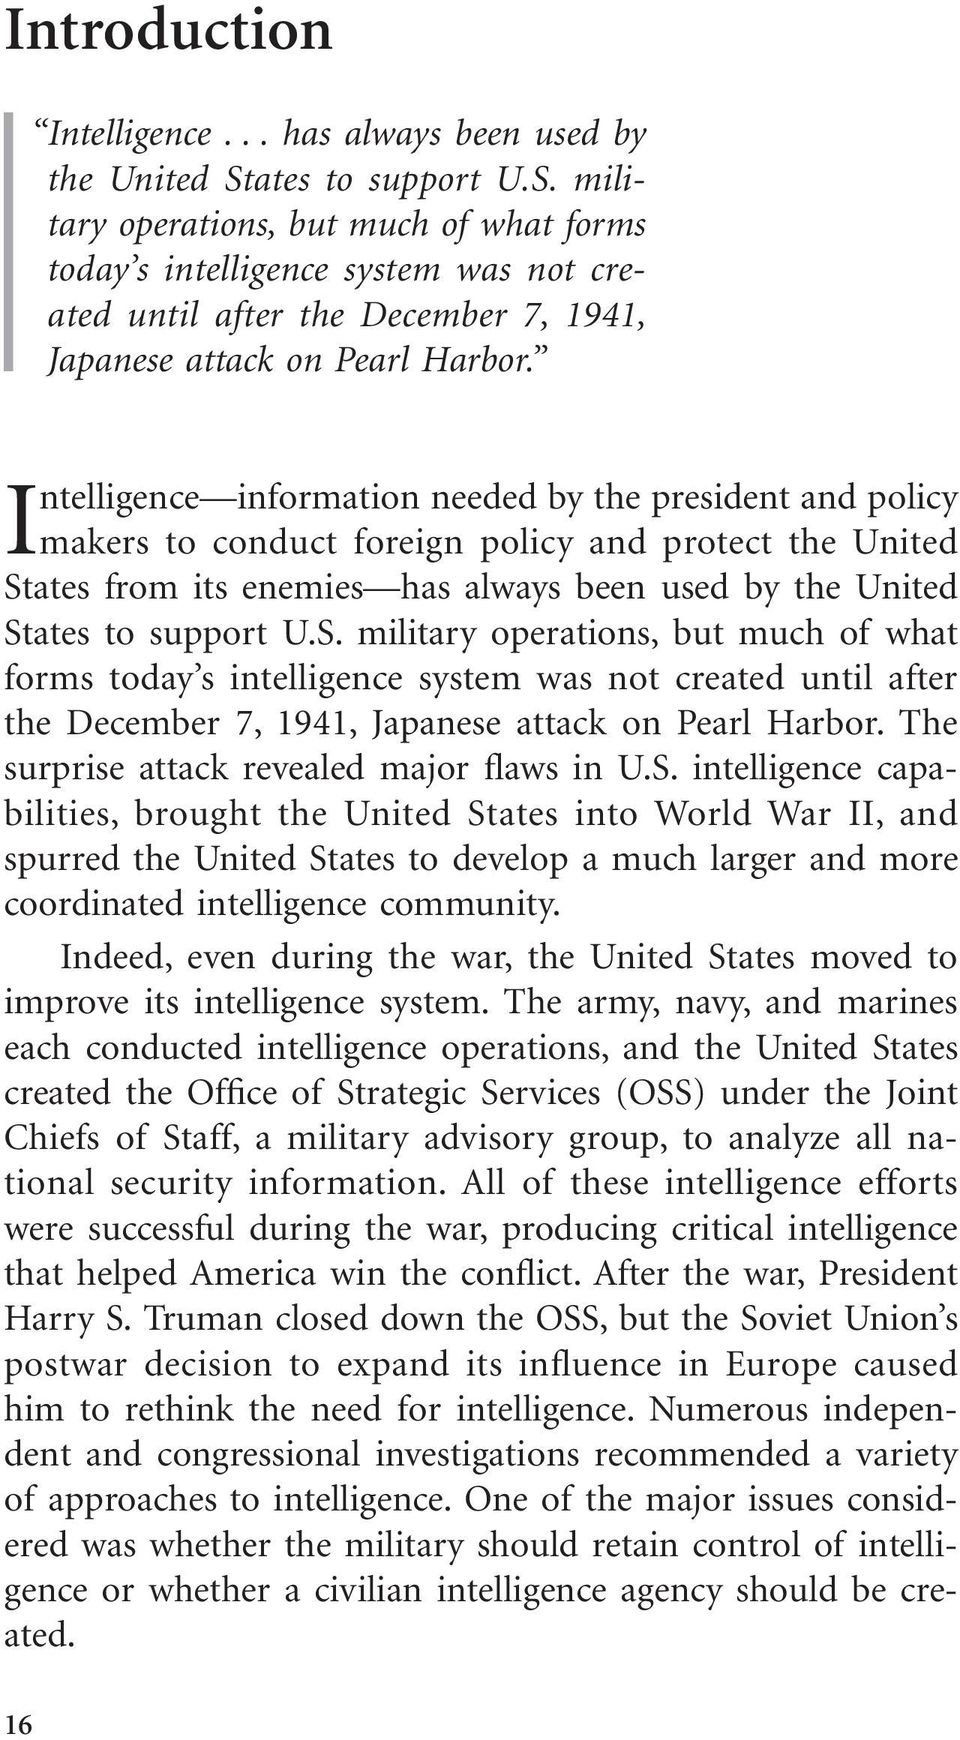 Intelligence information needed by the president and policy makers to conduct foreign policy and protect the United States from its enemies has always been used by the United St The surprise attack